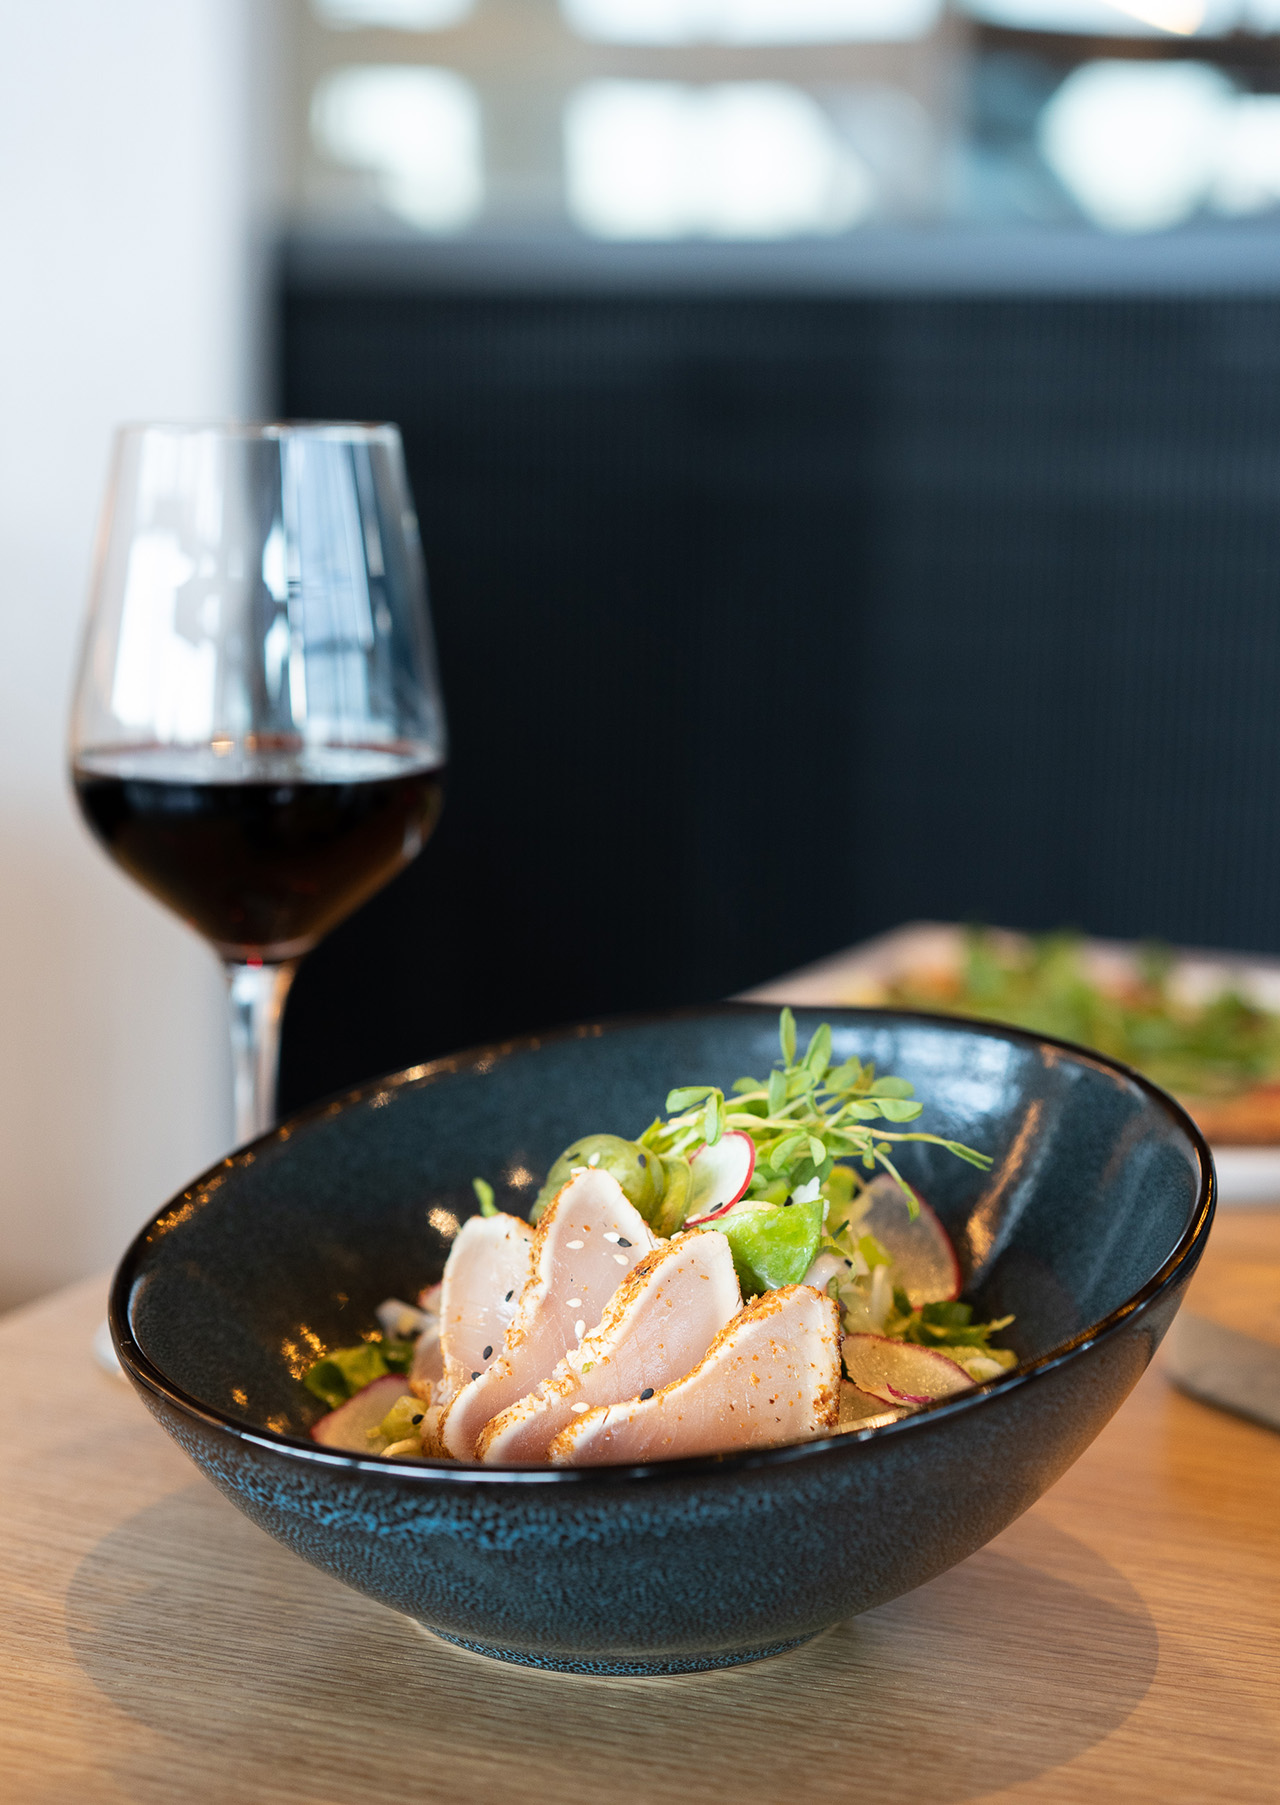 Maguro Tuna Salad with Albacore tuna tataki, rice noodles, vegetable julienne, mixed greens, miso ginger dressing